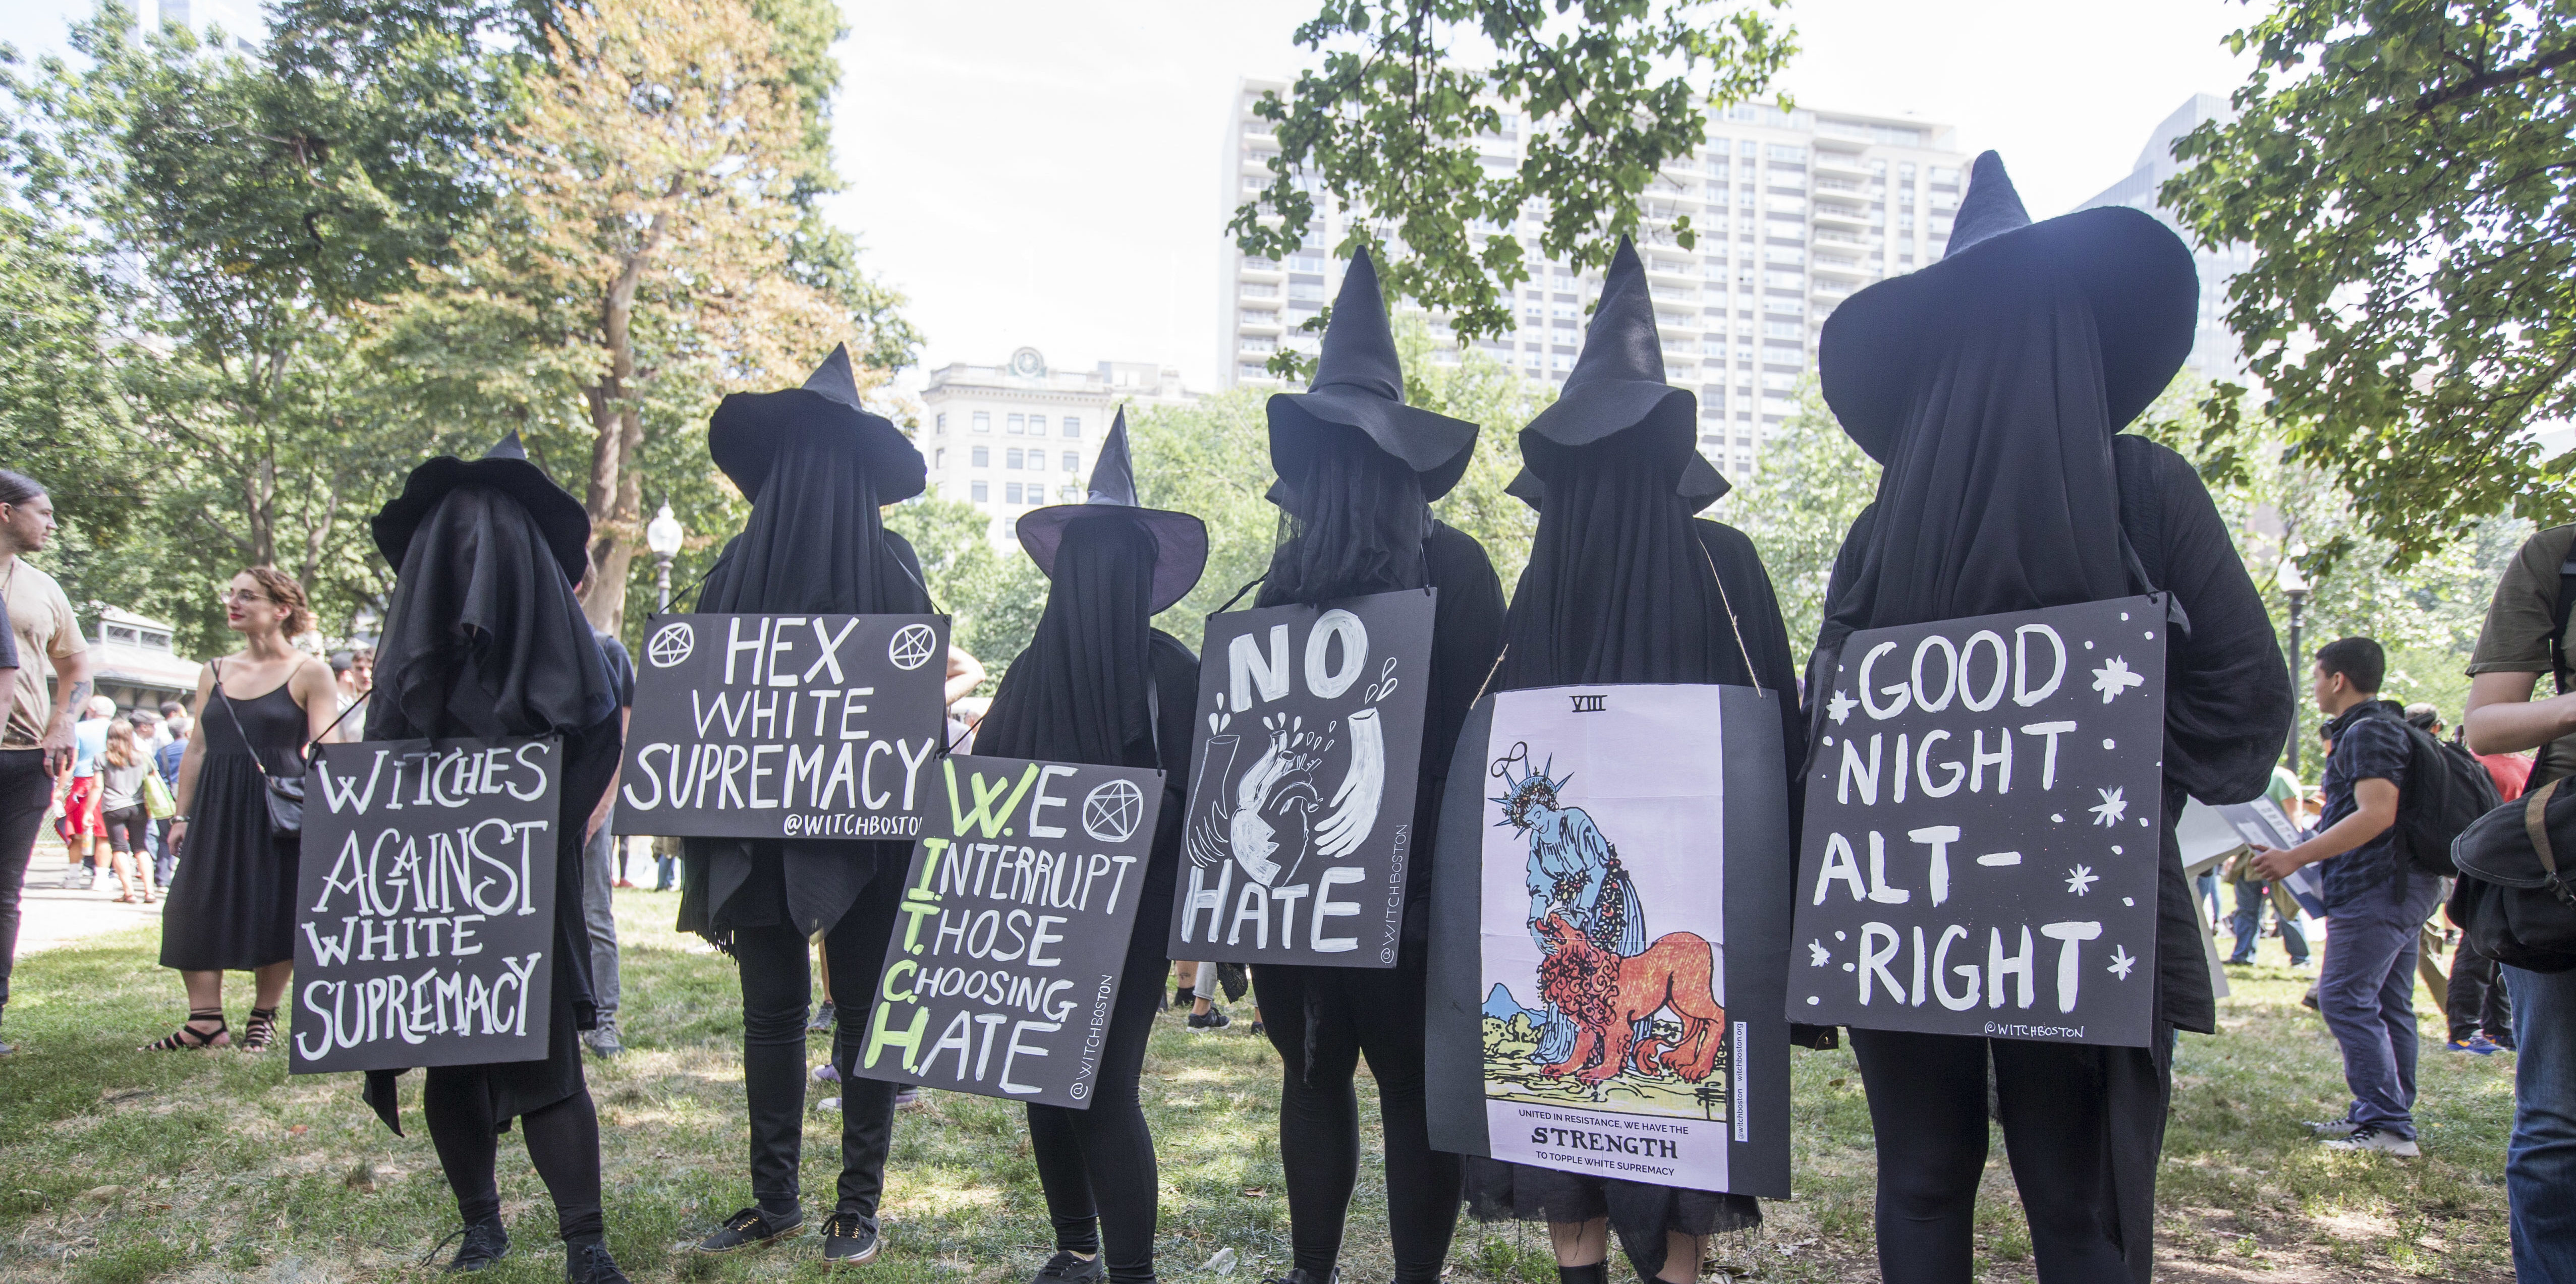 BOSTON, MA - AUGUST 19: Counter protesters in witch costumes hold up signs after a march to the 'Free Speech Rally' on Boston Common on August 19, 2017 in Boston, Massachusetts. Thousands of demonstrators and counter-protestors are expected at Boston Common where the Boston Free Speech Rally is being held. (Photo by Scott EisBOSTON, MA - AUGUST 19: Counter protesters in witch costumes hold up signs after a march to the 'Free Speech Rally' on Boston Common on August 19, 2017 in Boston, Massachusetts. Thousands of demonstrators and counter-protestors are expected at Boston Common where the Boston Free Speech Rally is being held. (Photo by Scott Eisen/Getty Images)en/Getty Images)